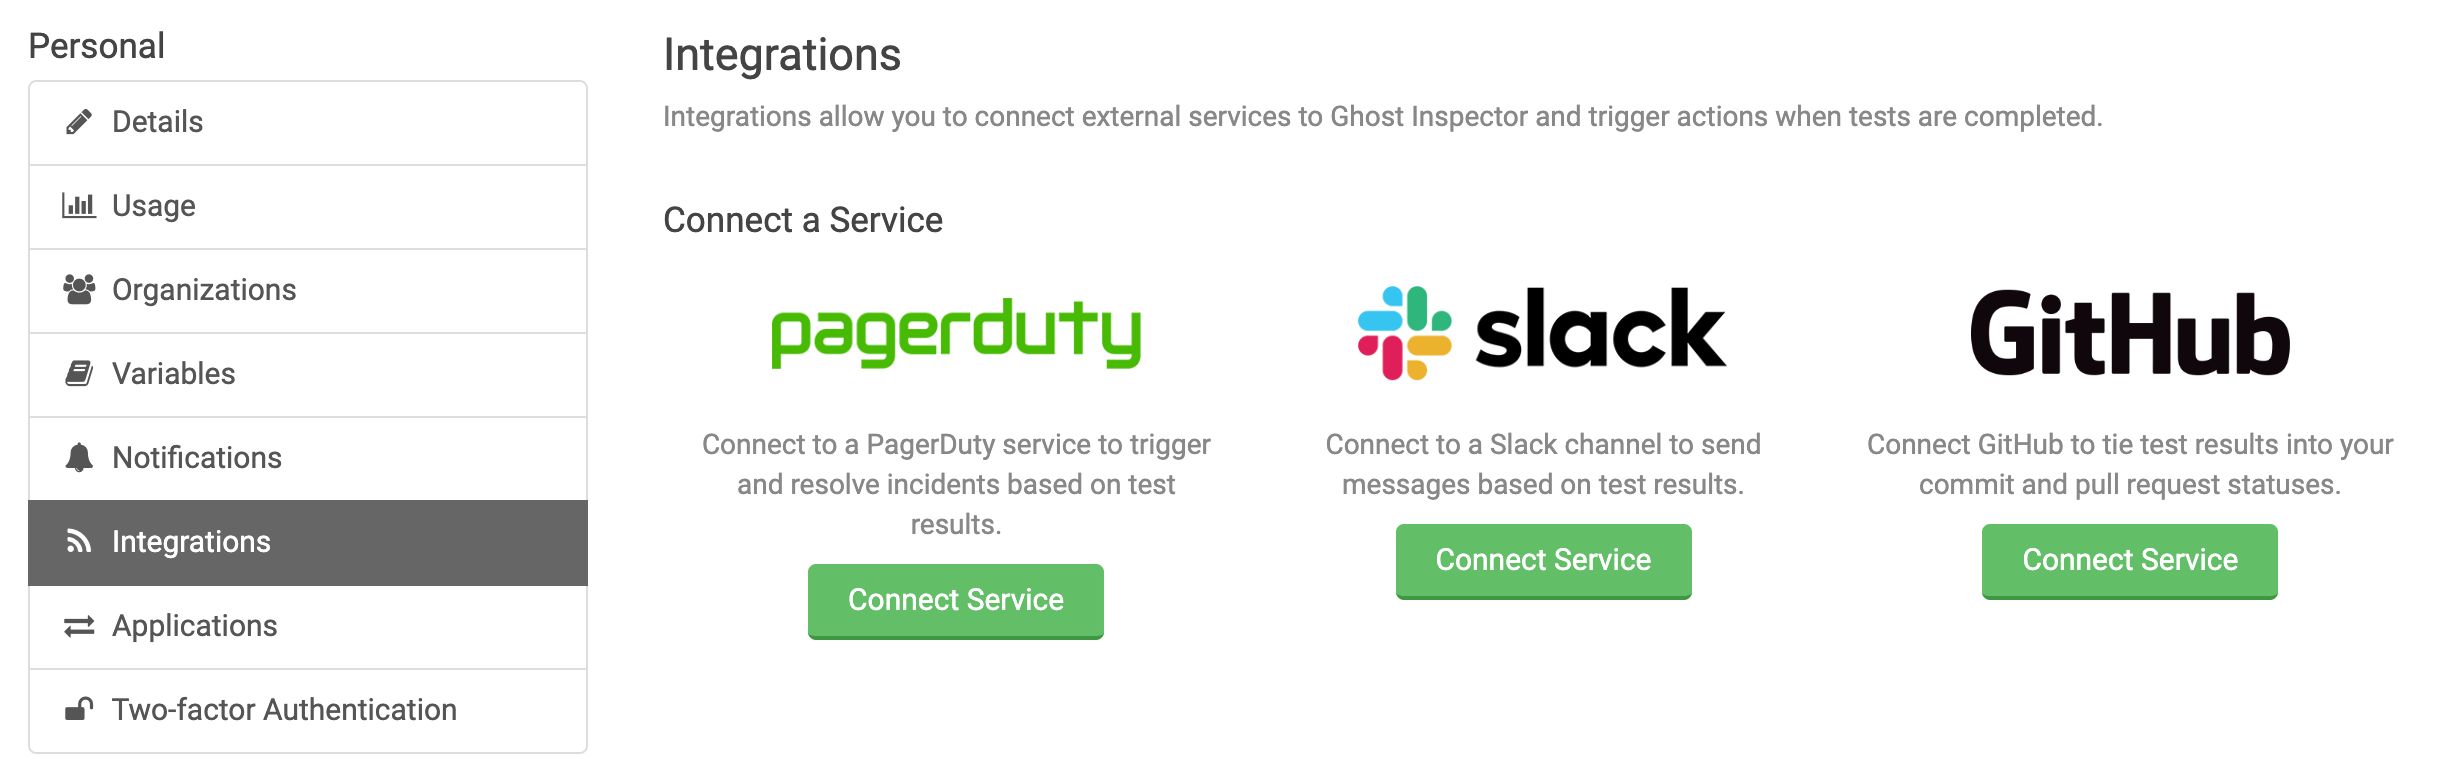 Ghost Inspector Integrations